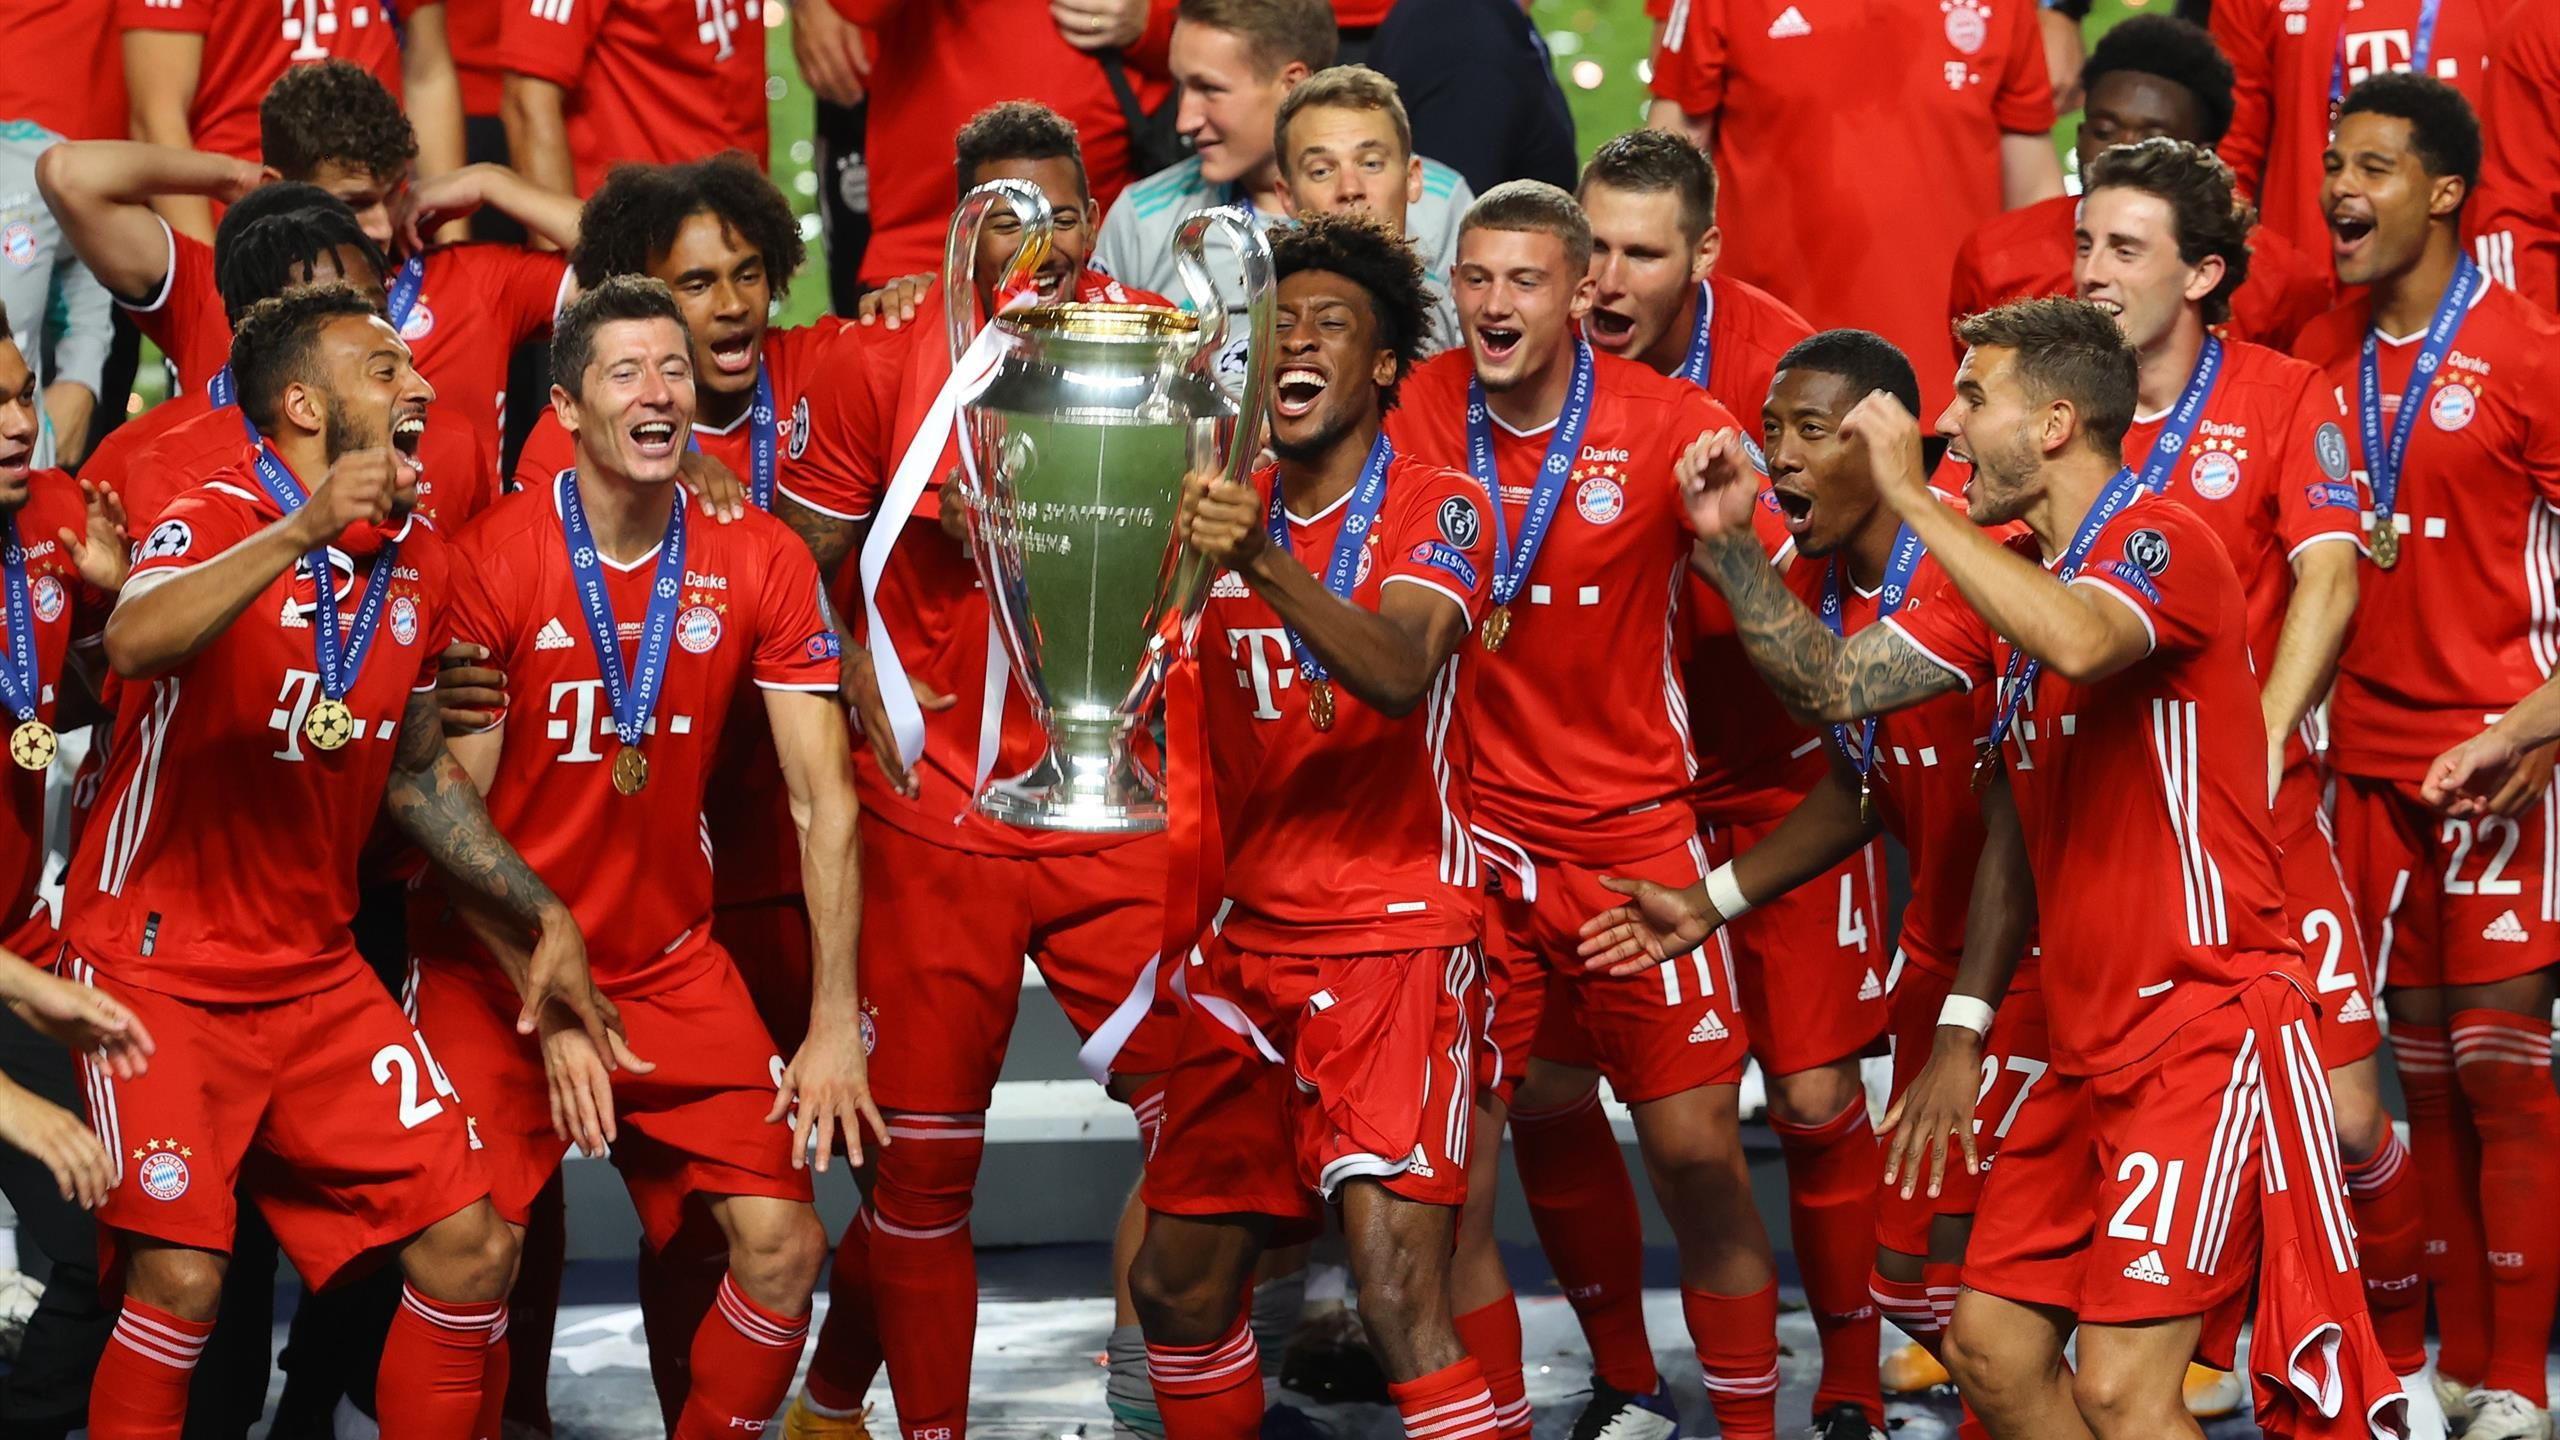 'Bayern's instability causing concern'